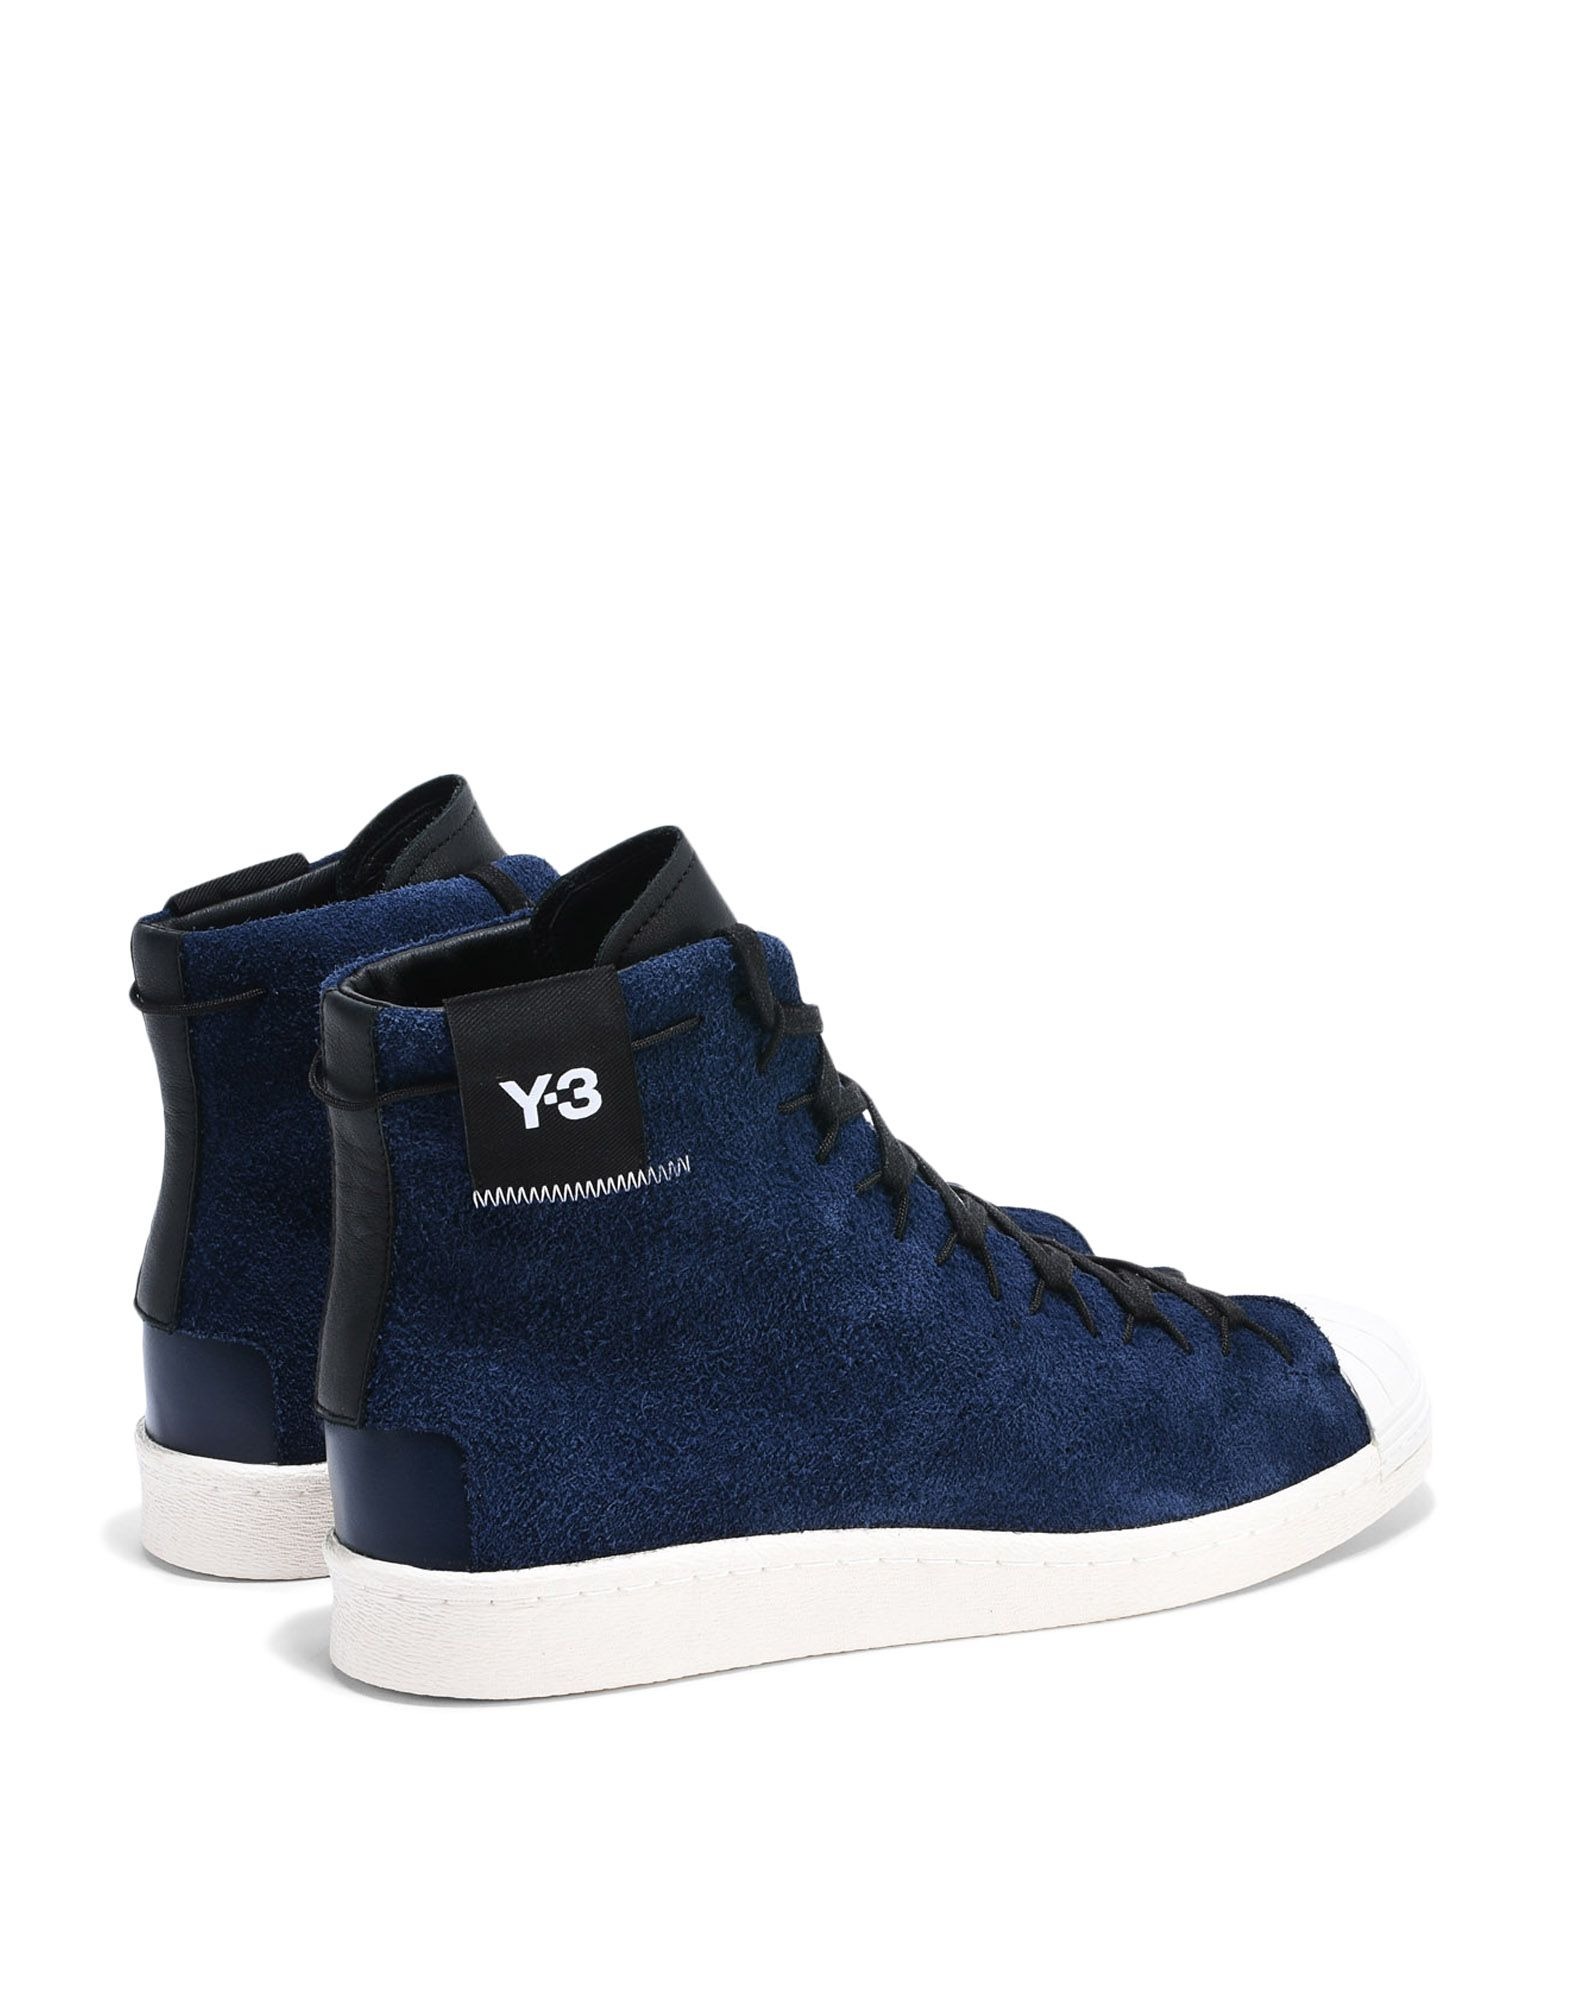 Y-3 Y-3 Super High High-top sneakers E c